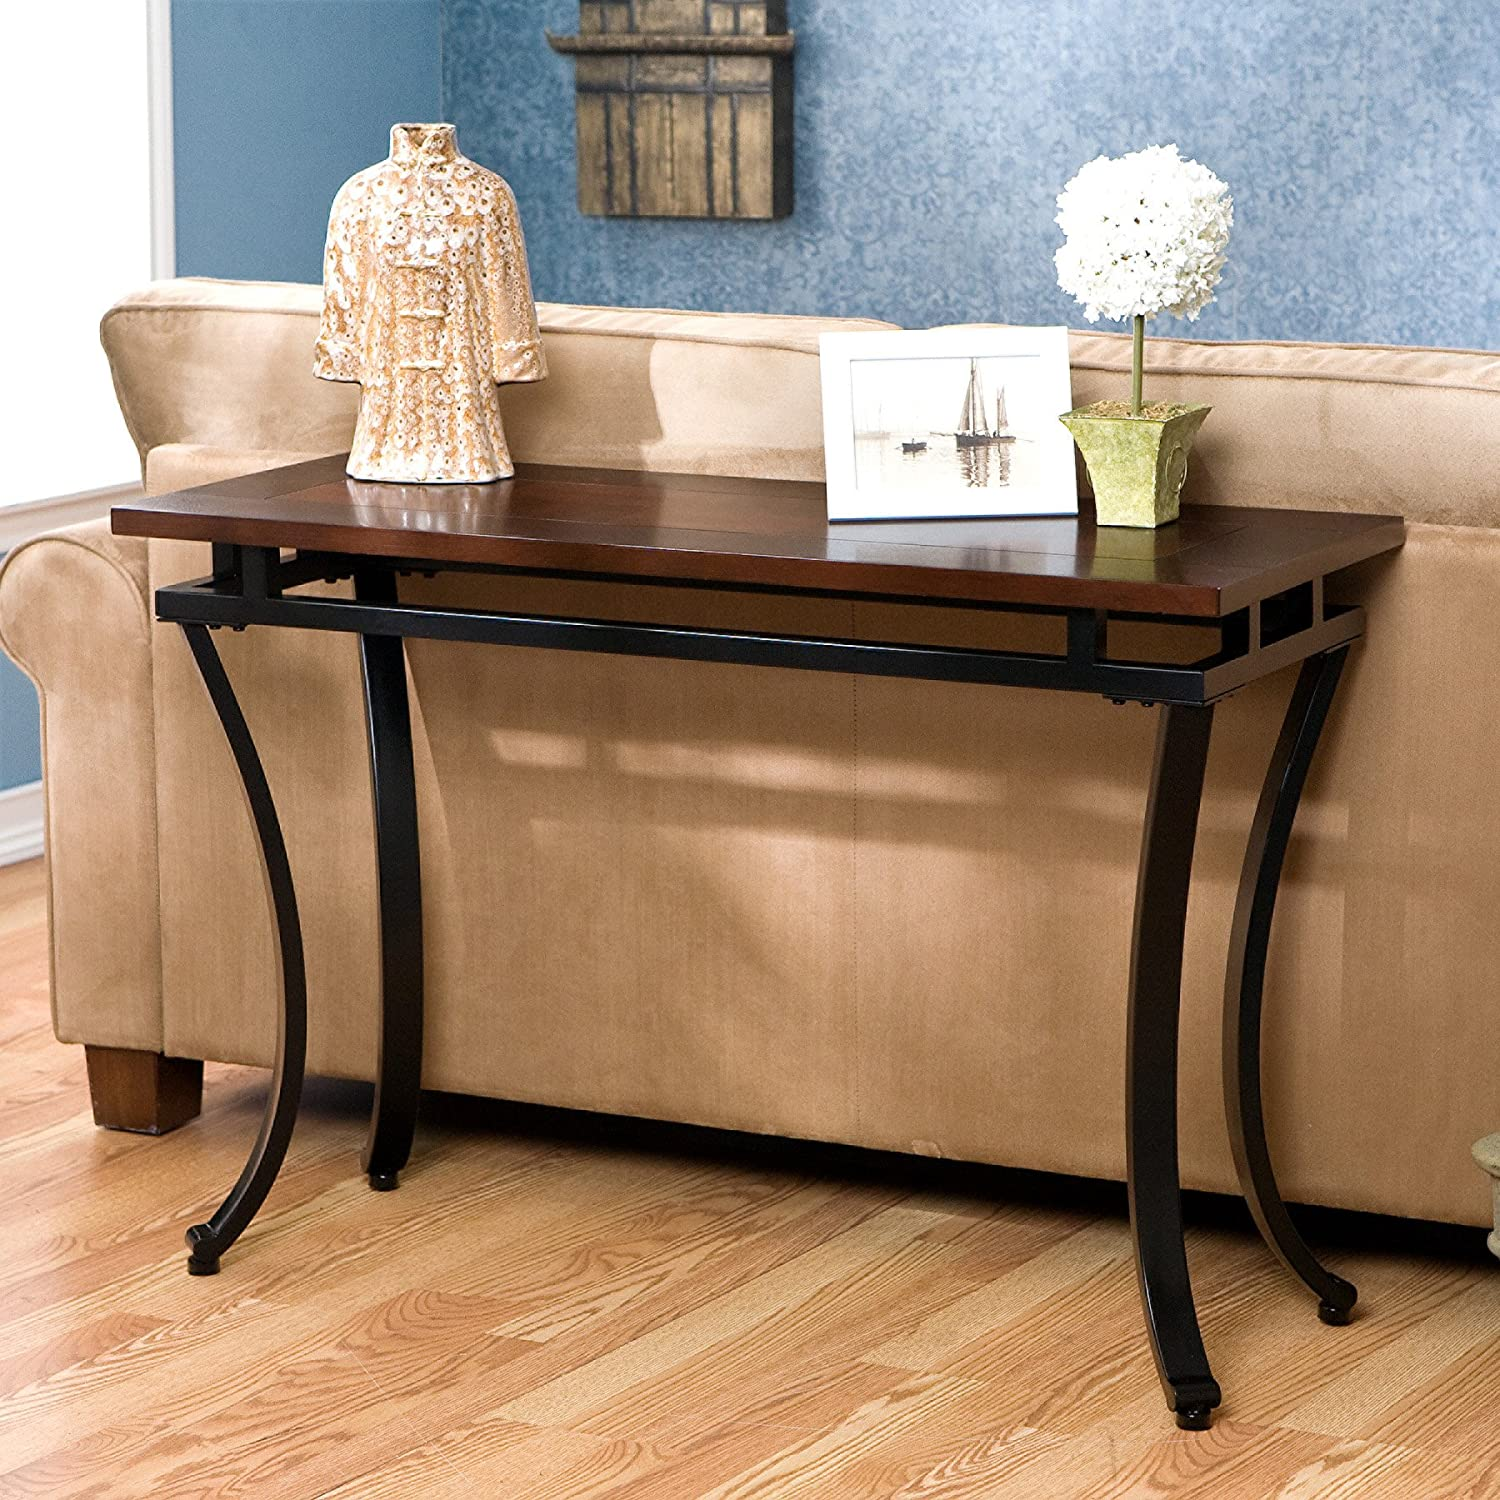 amazoncom southern enterprises modesto sofa console table espresso finish kitchen u0026 dining